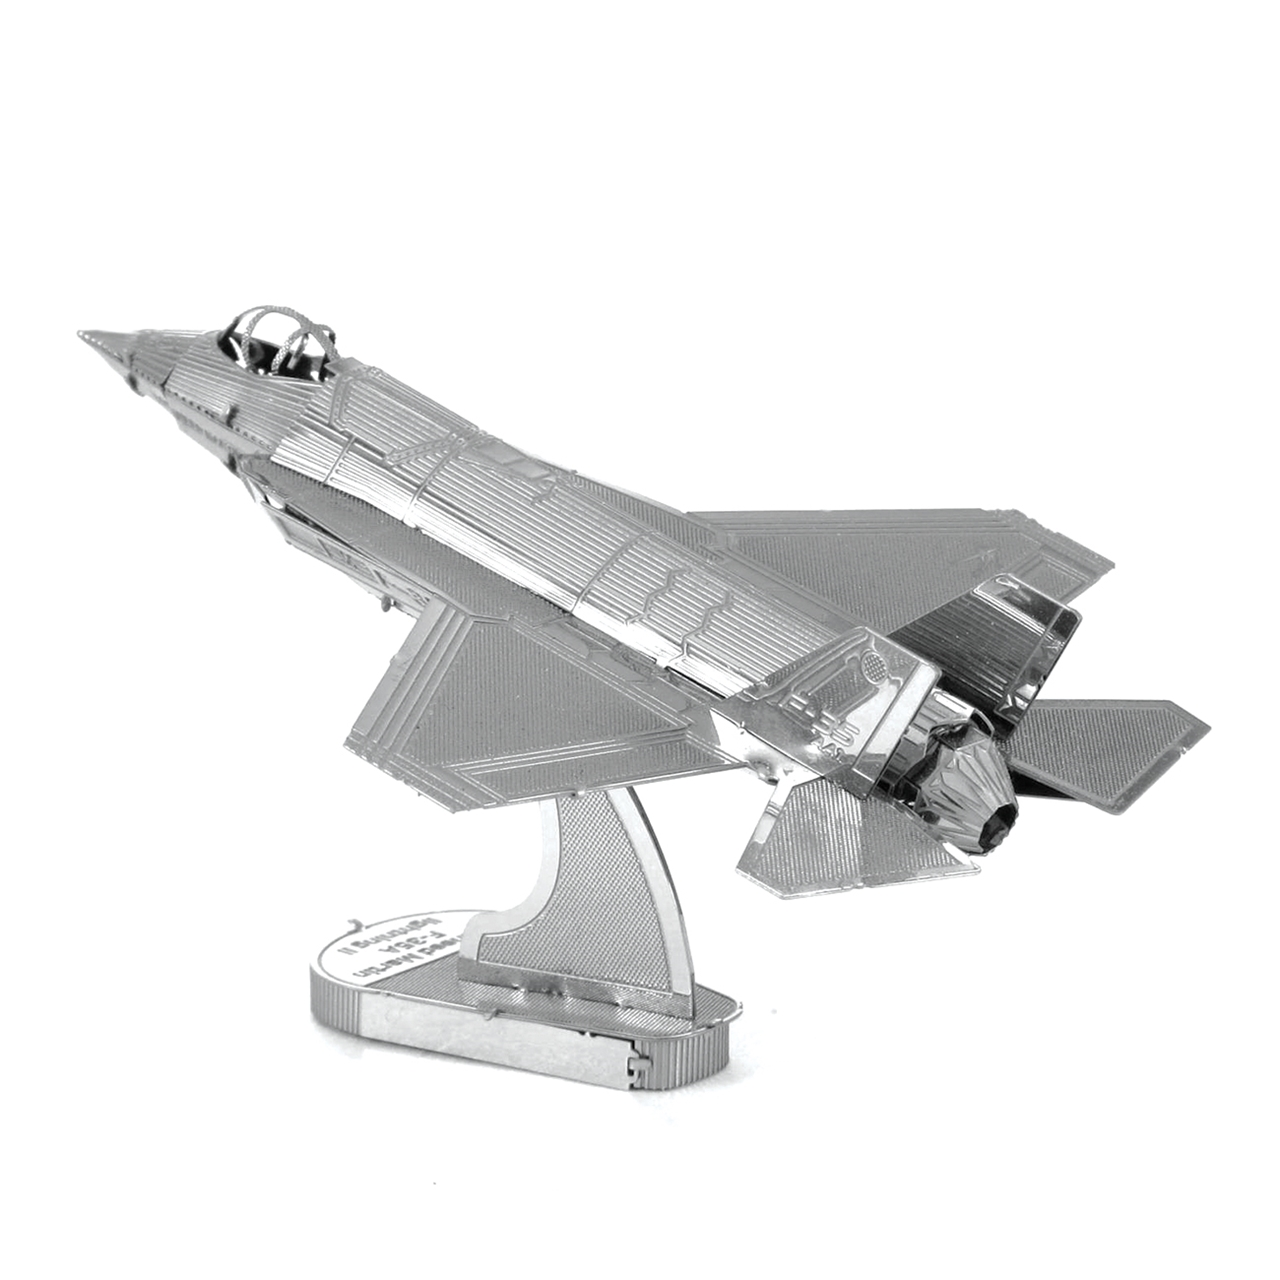 Metal Earth: F-35 Lightning II - Metal Sculpture Kit